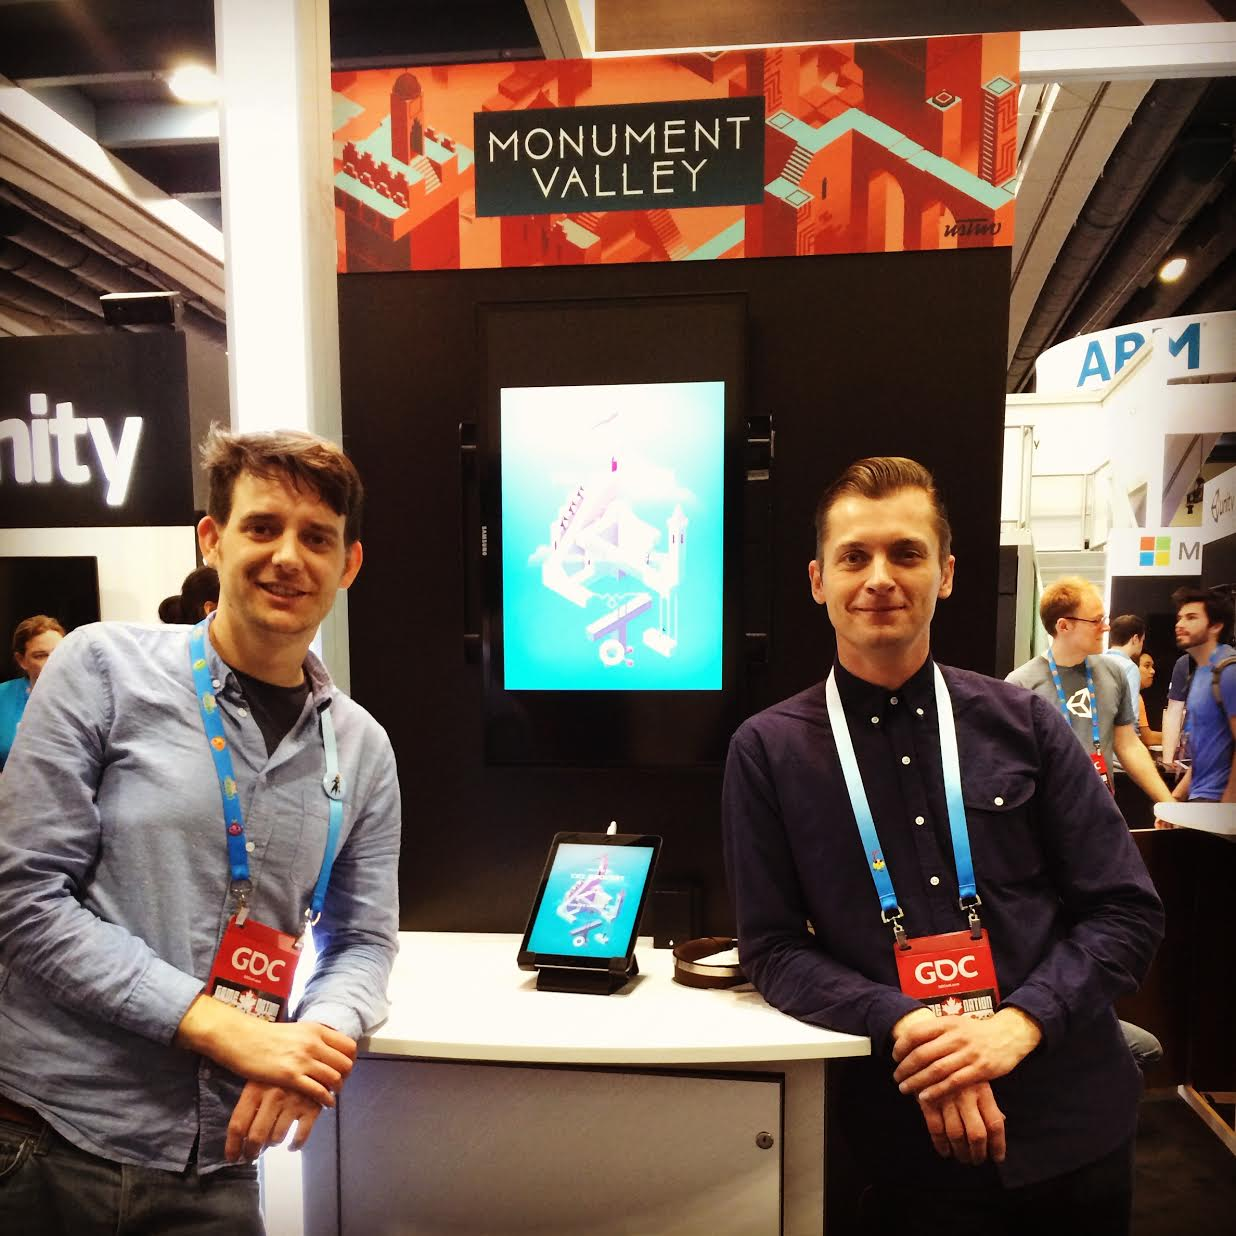 Pash and Neil demoing MV at GDC 2014, a few weeks before release. Pash spent the previous day hacking the game to display sideways on a display set to landscape.